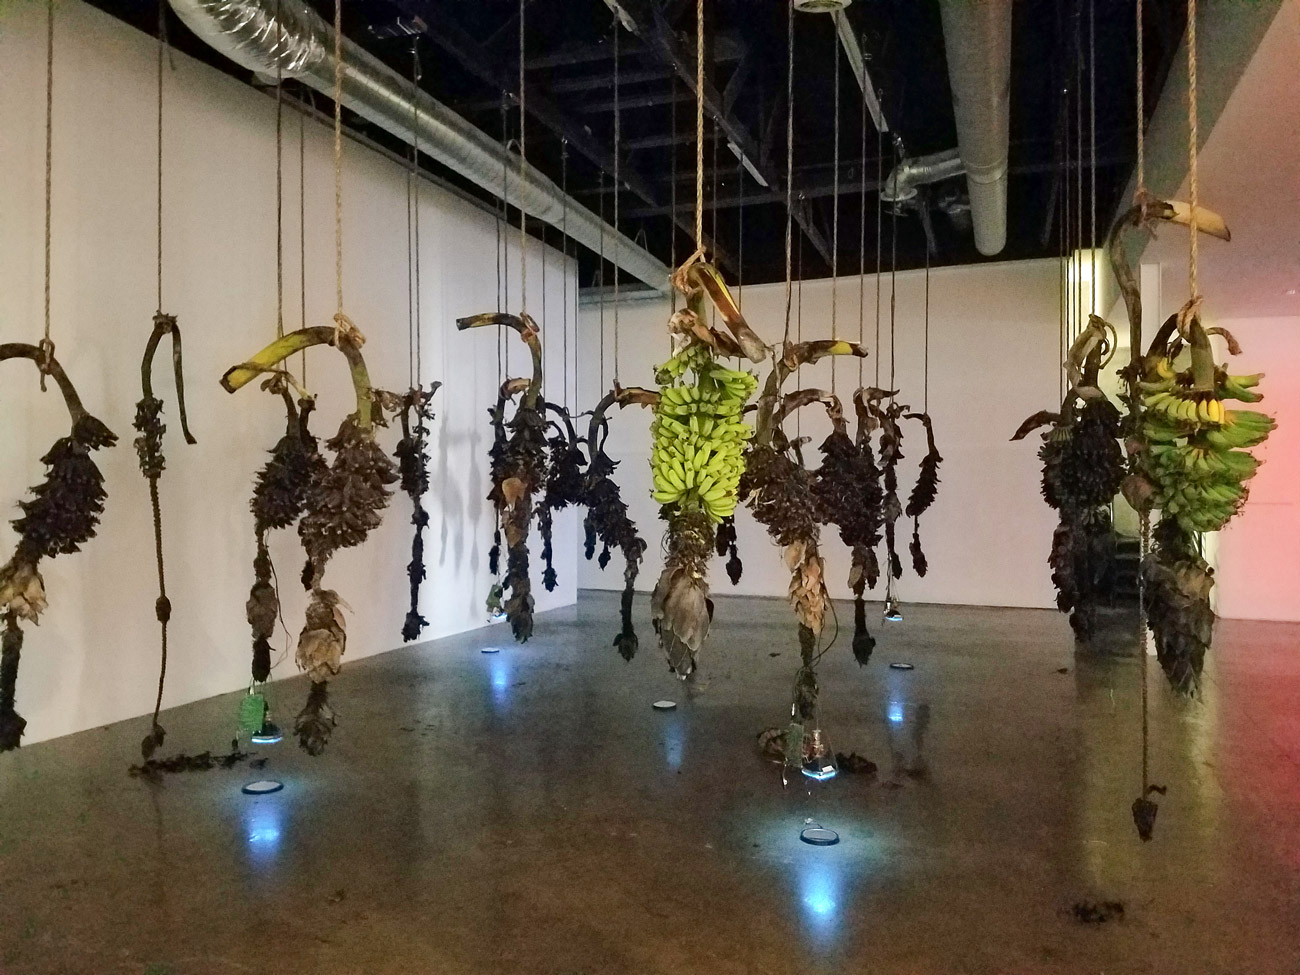 Branches of fresh and rotting bananas hang in a museum. Small video monitors attached to some branches point downward, with circular mirrors below them.